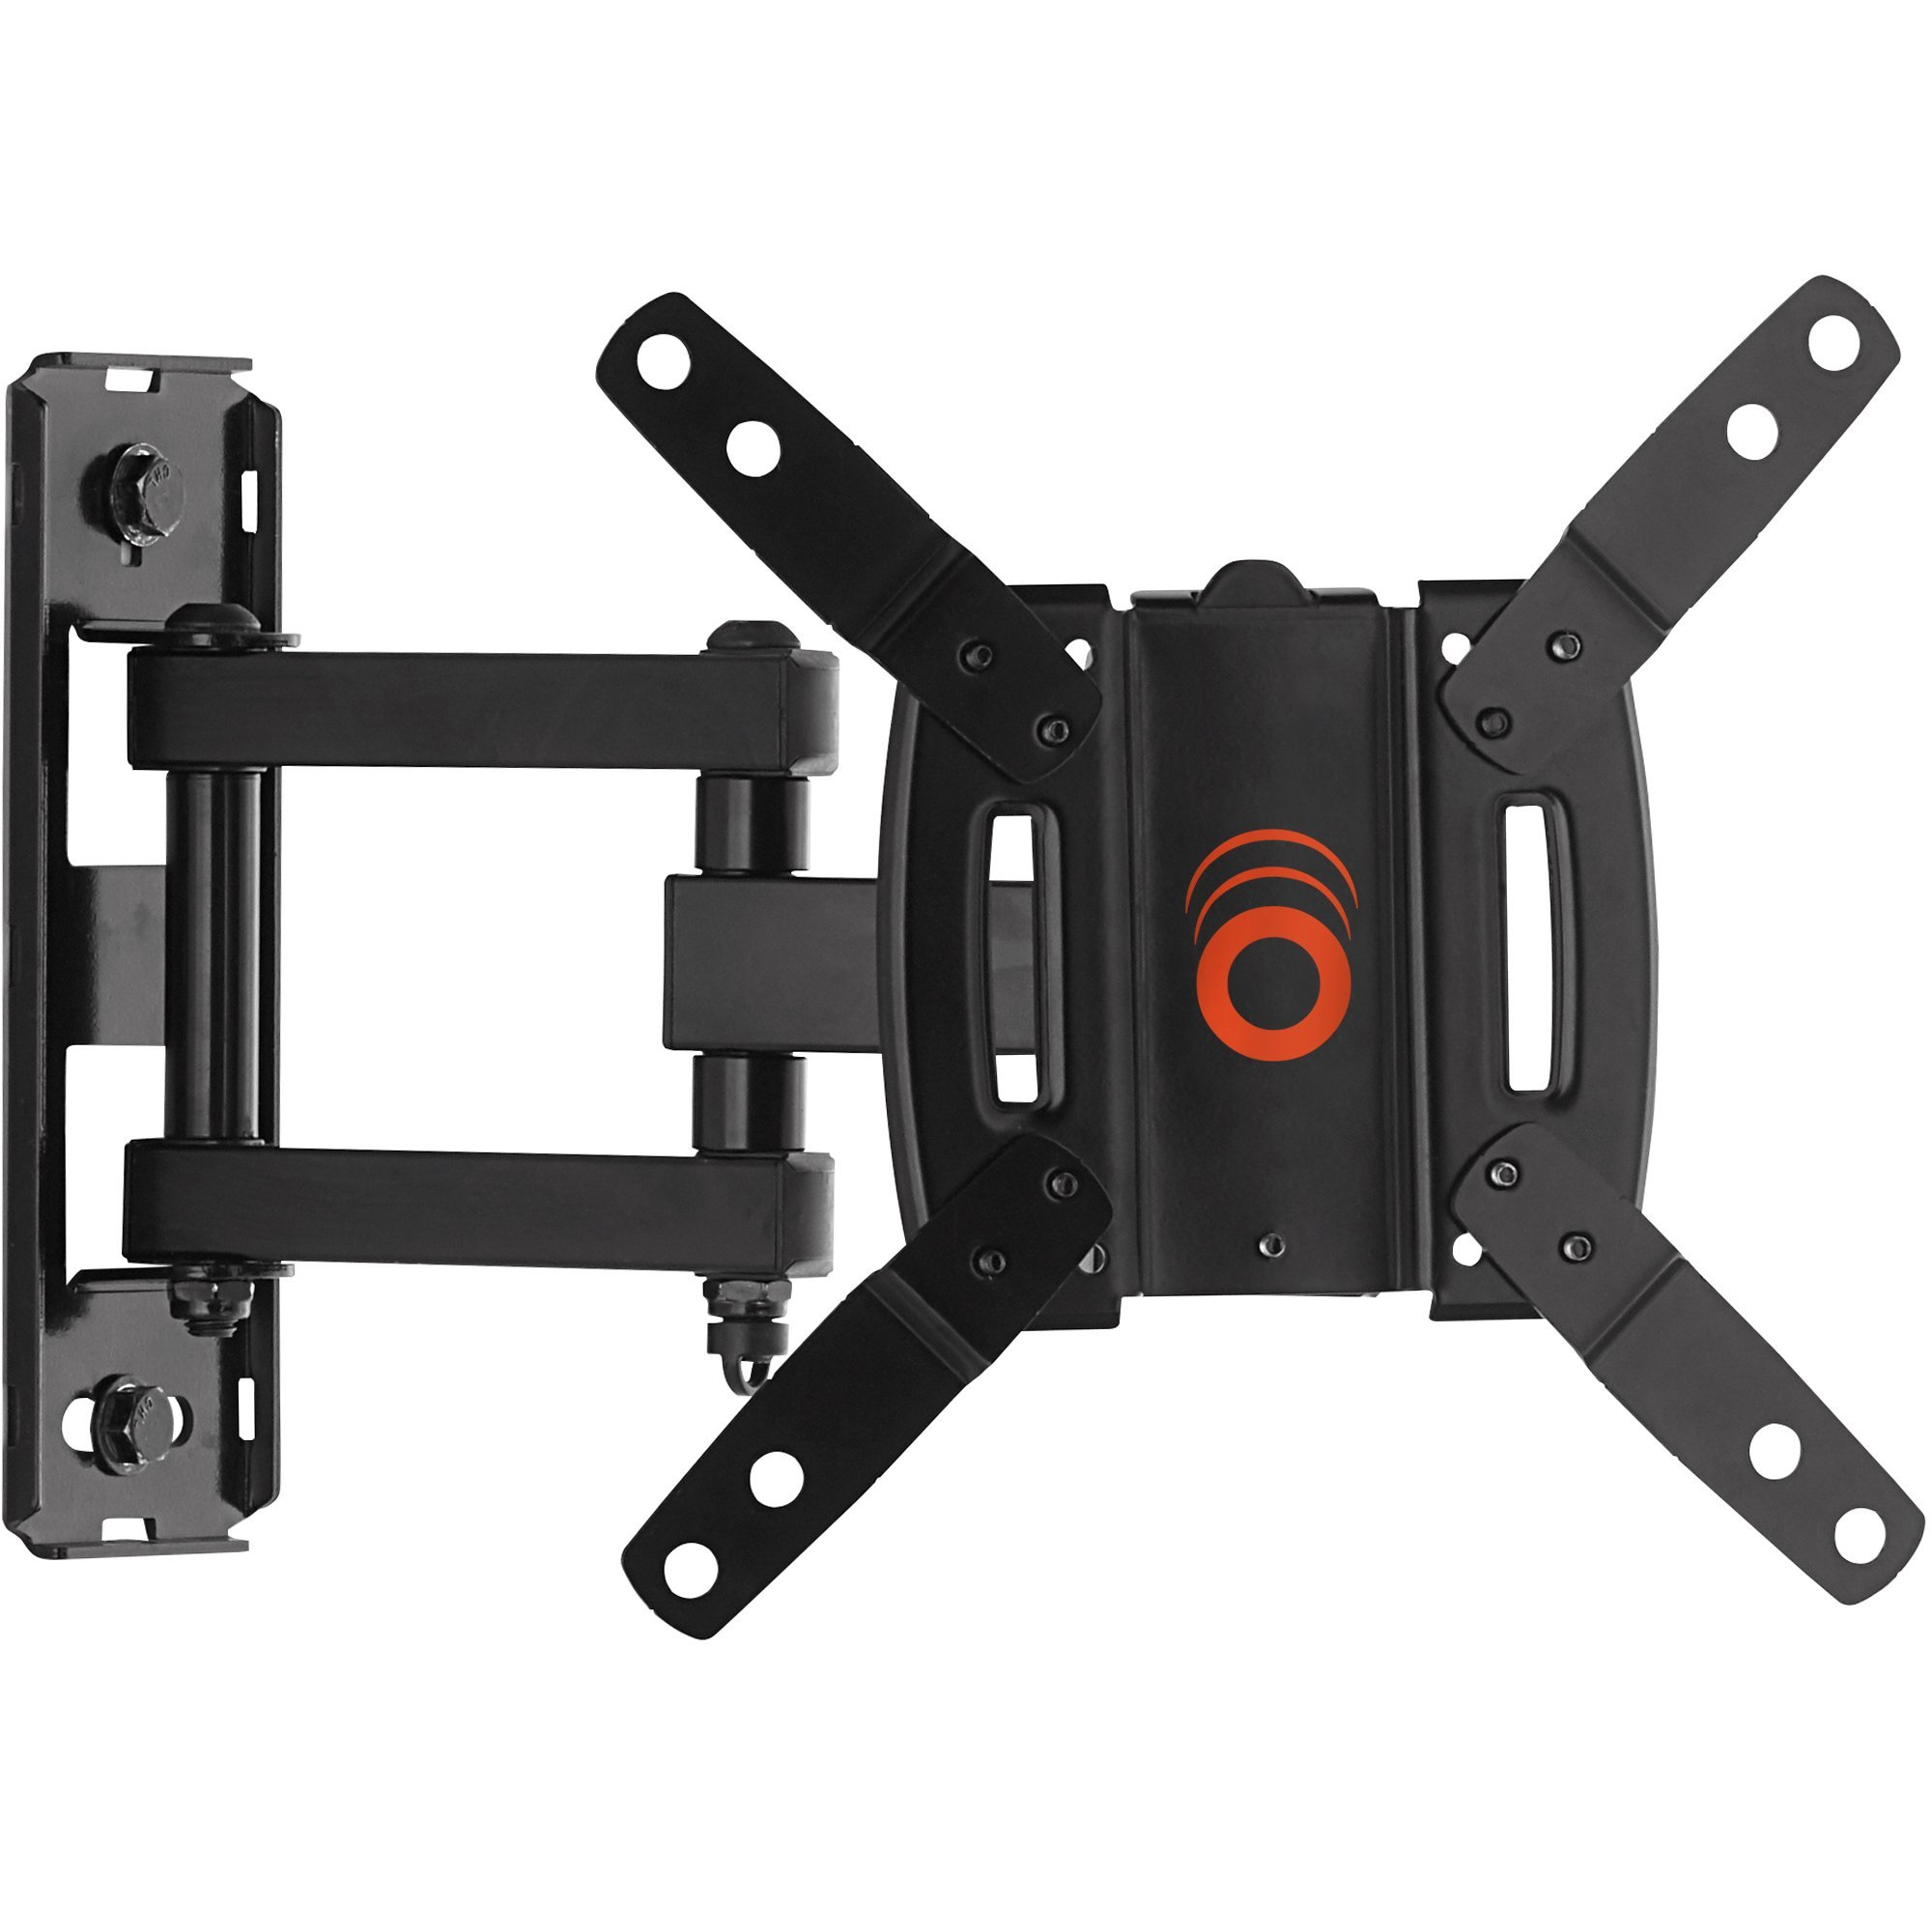 ECHOGEAR Full Motion Articulating TV Wall Mount Bracket for most 15-39 inch TVs & Computer Monitors Featuring 10.5'' of Extension, 90º of Swivel, 16º of Tilt - EGSF1-BK